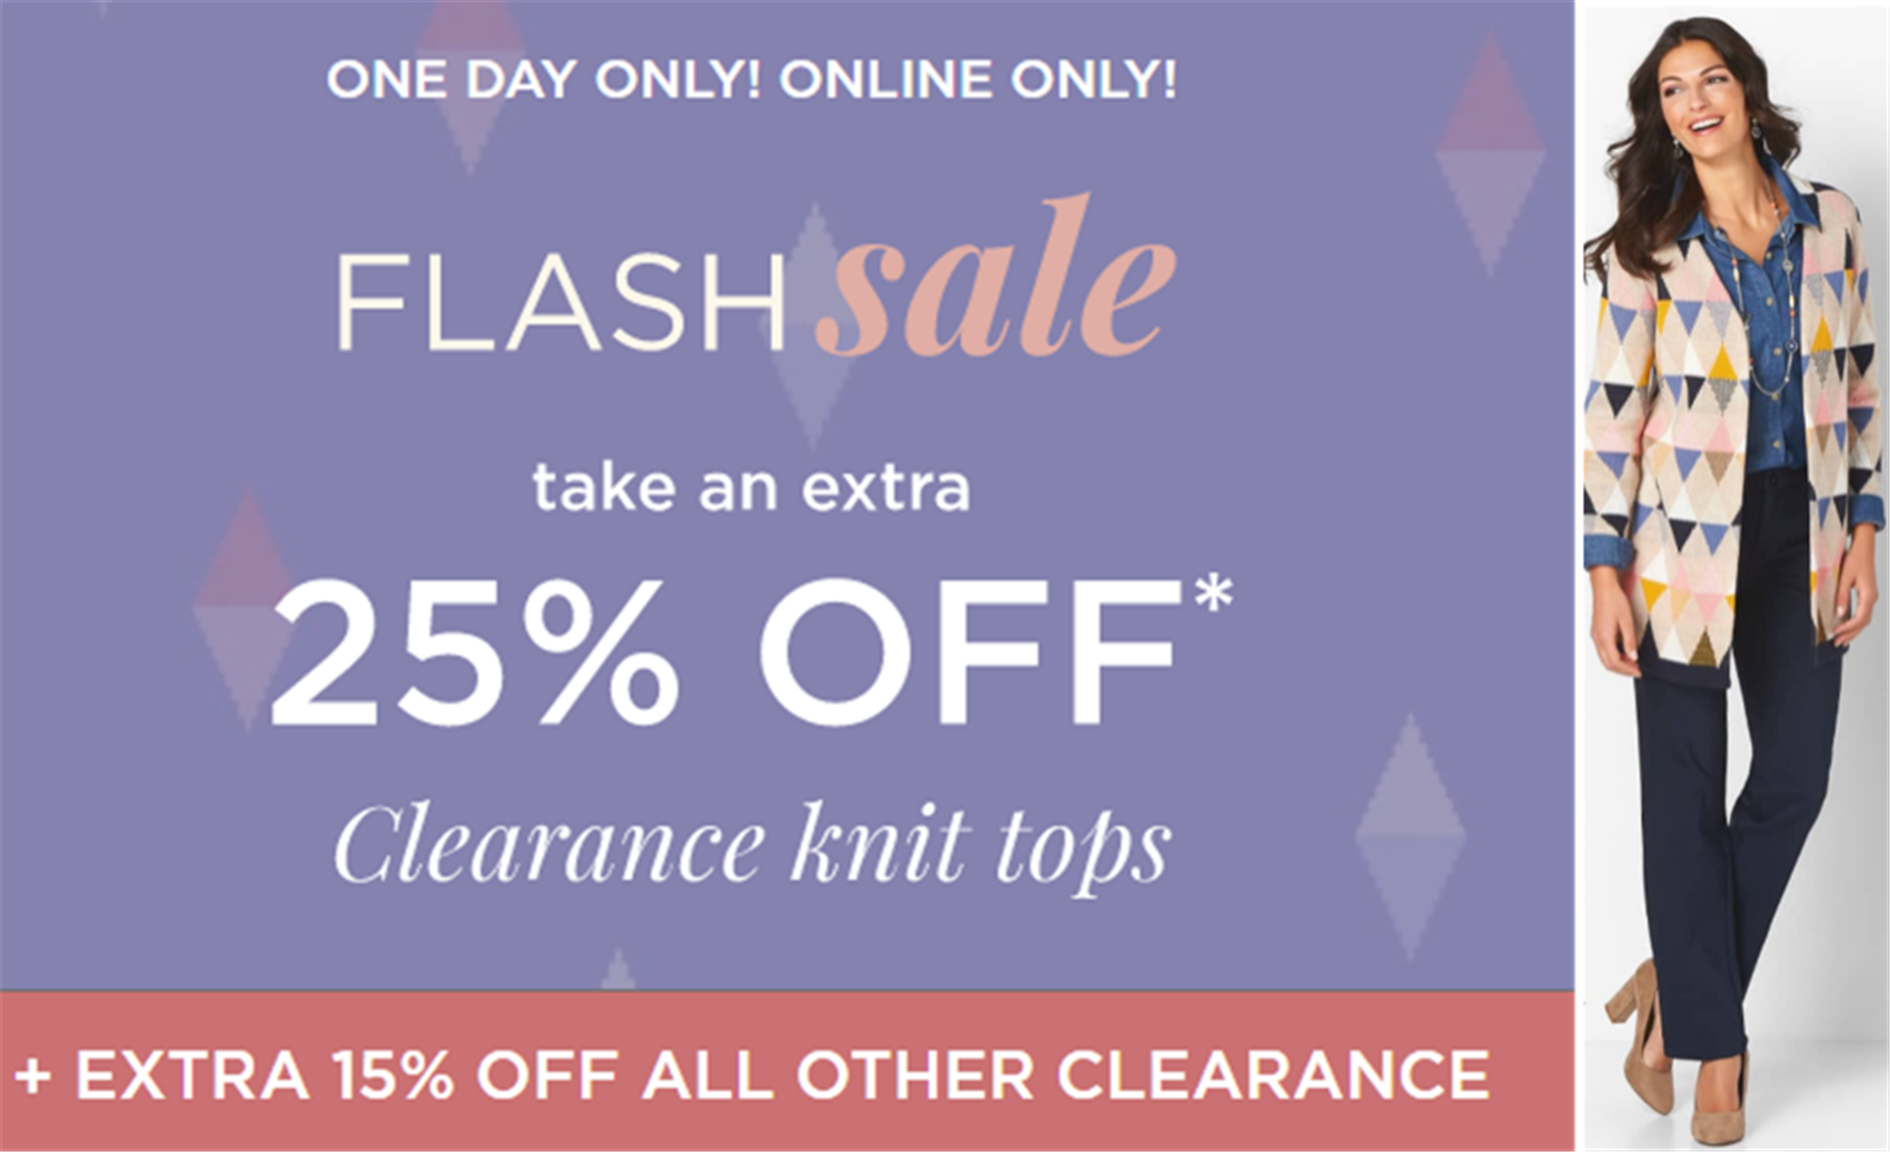 Christopher & Banks – FLASH SALE! Additional 25% off Clearance Knit Tops + Additional $20 off $100!